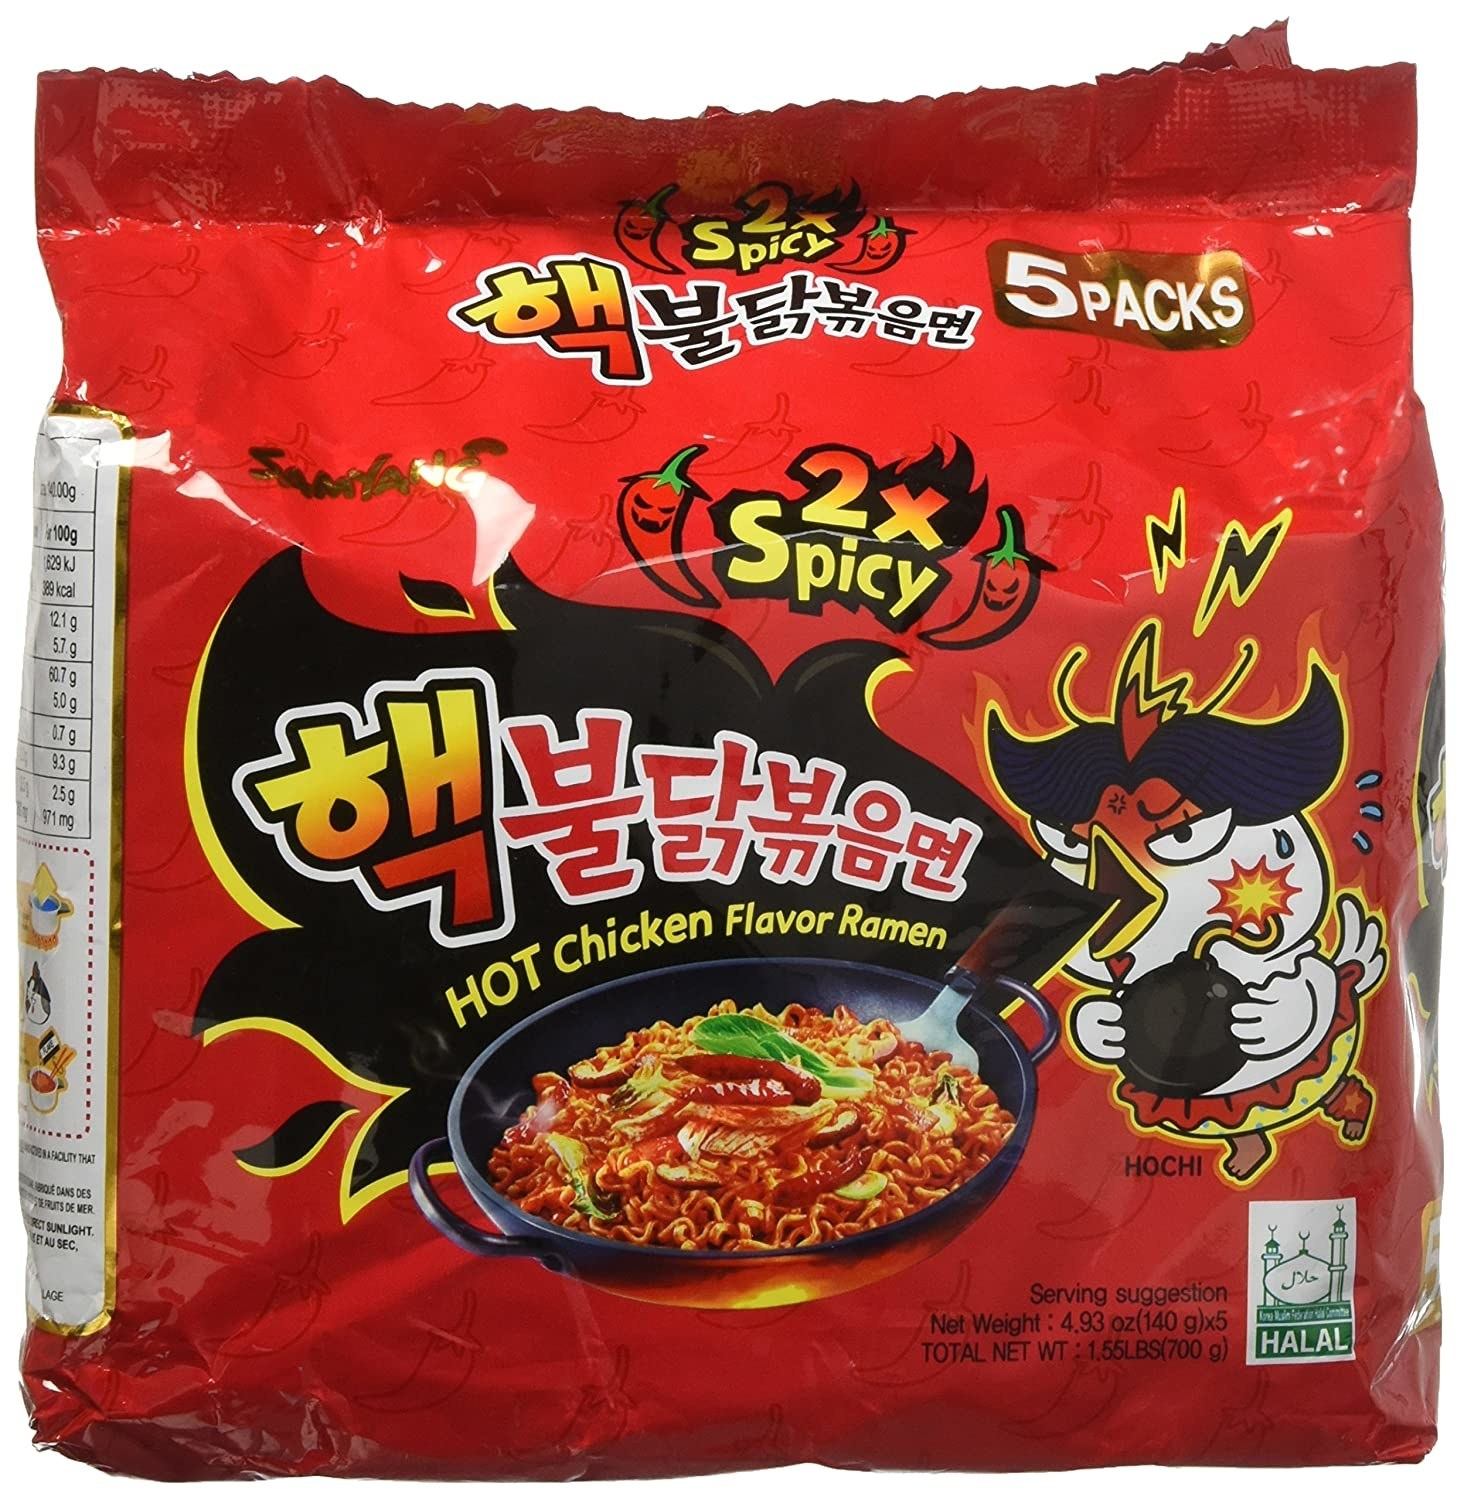 Spicy chicken noodles packaging